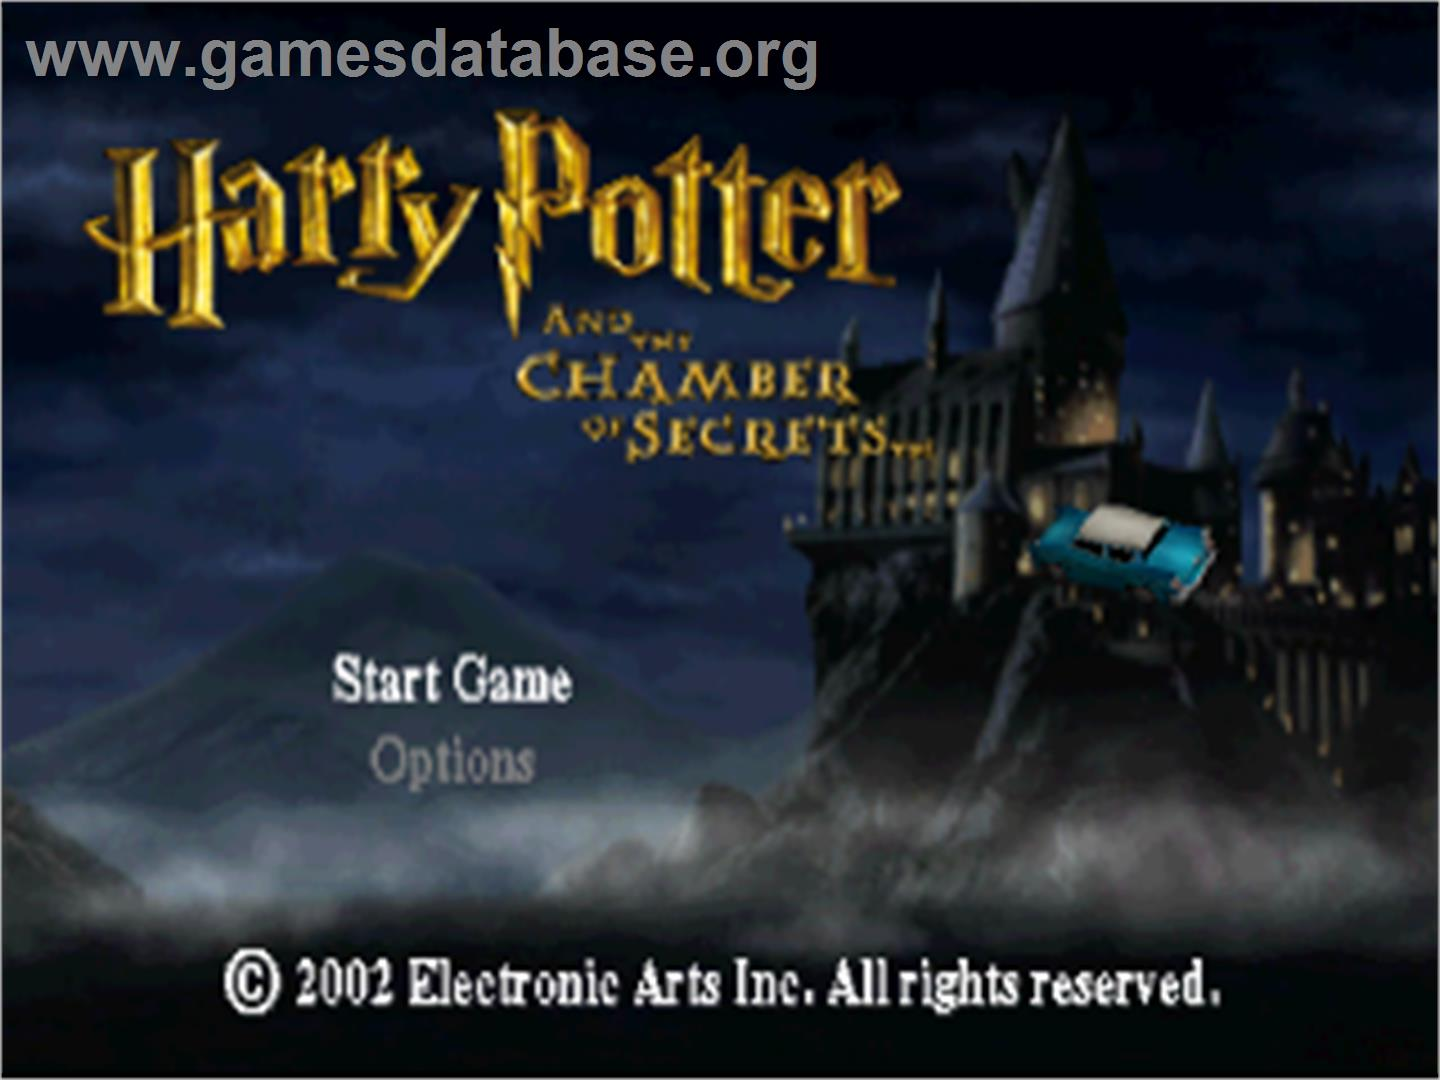 Harry Potter and the Chamber of Secrets - Sony Playstation - Artwork - Title Screen